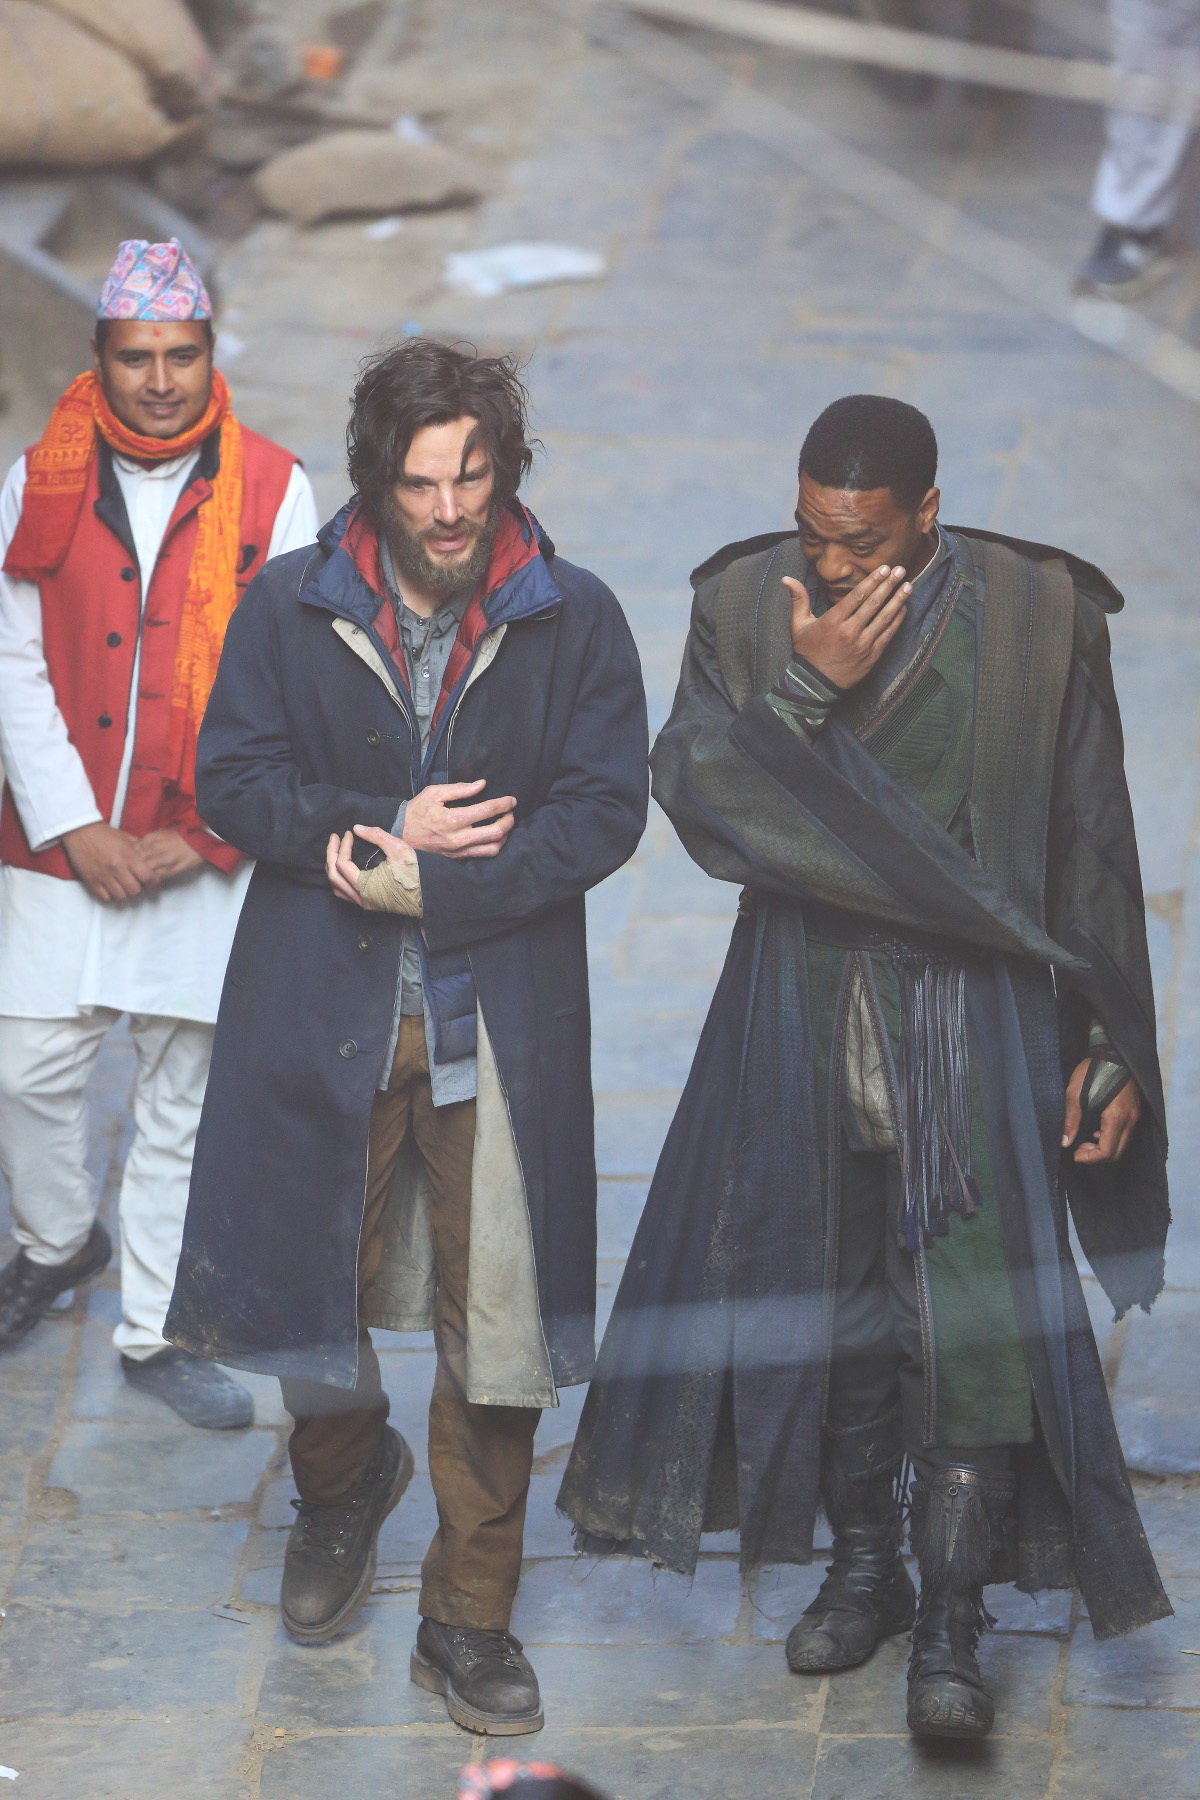 dr strange movie benedict cumberbatch and chiwetel ejiofor on set in nepal (complete)